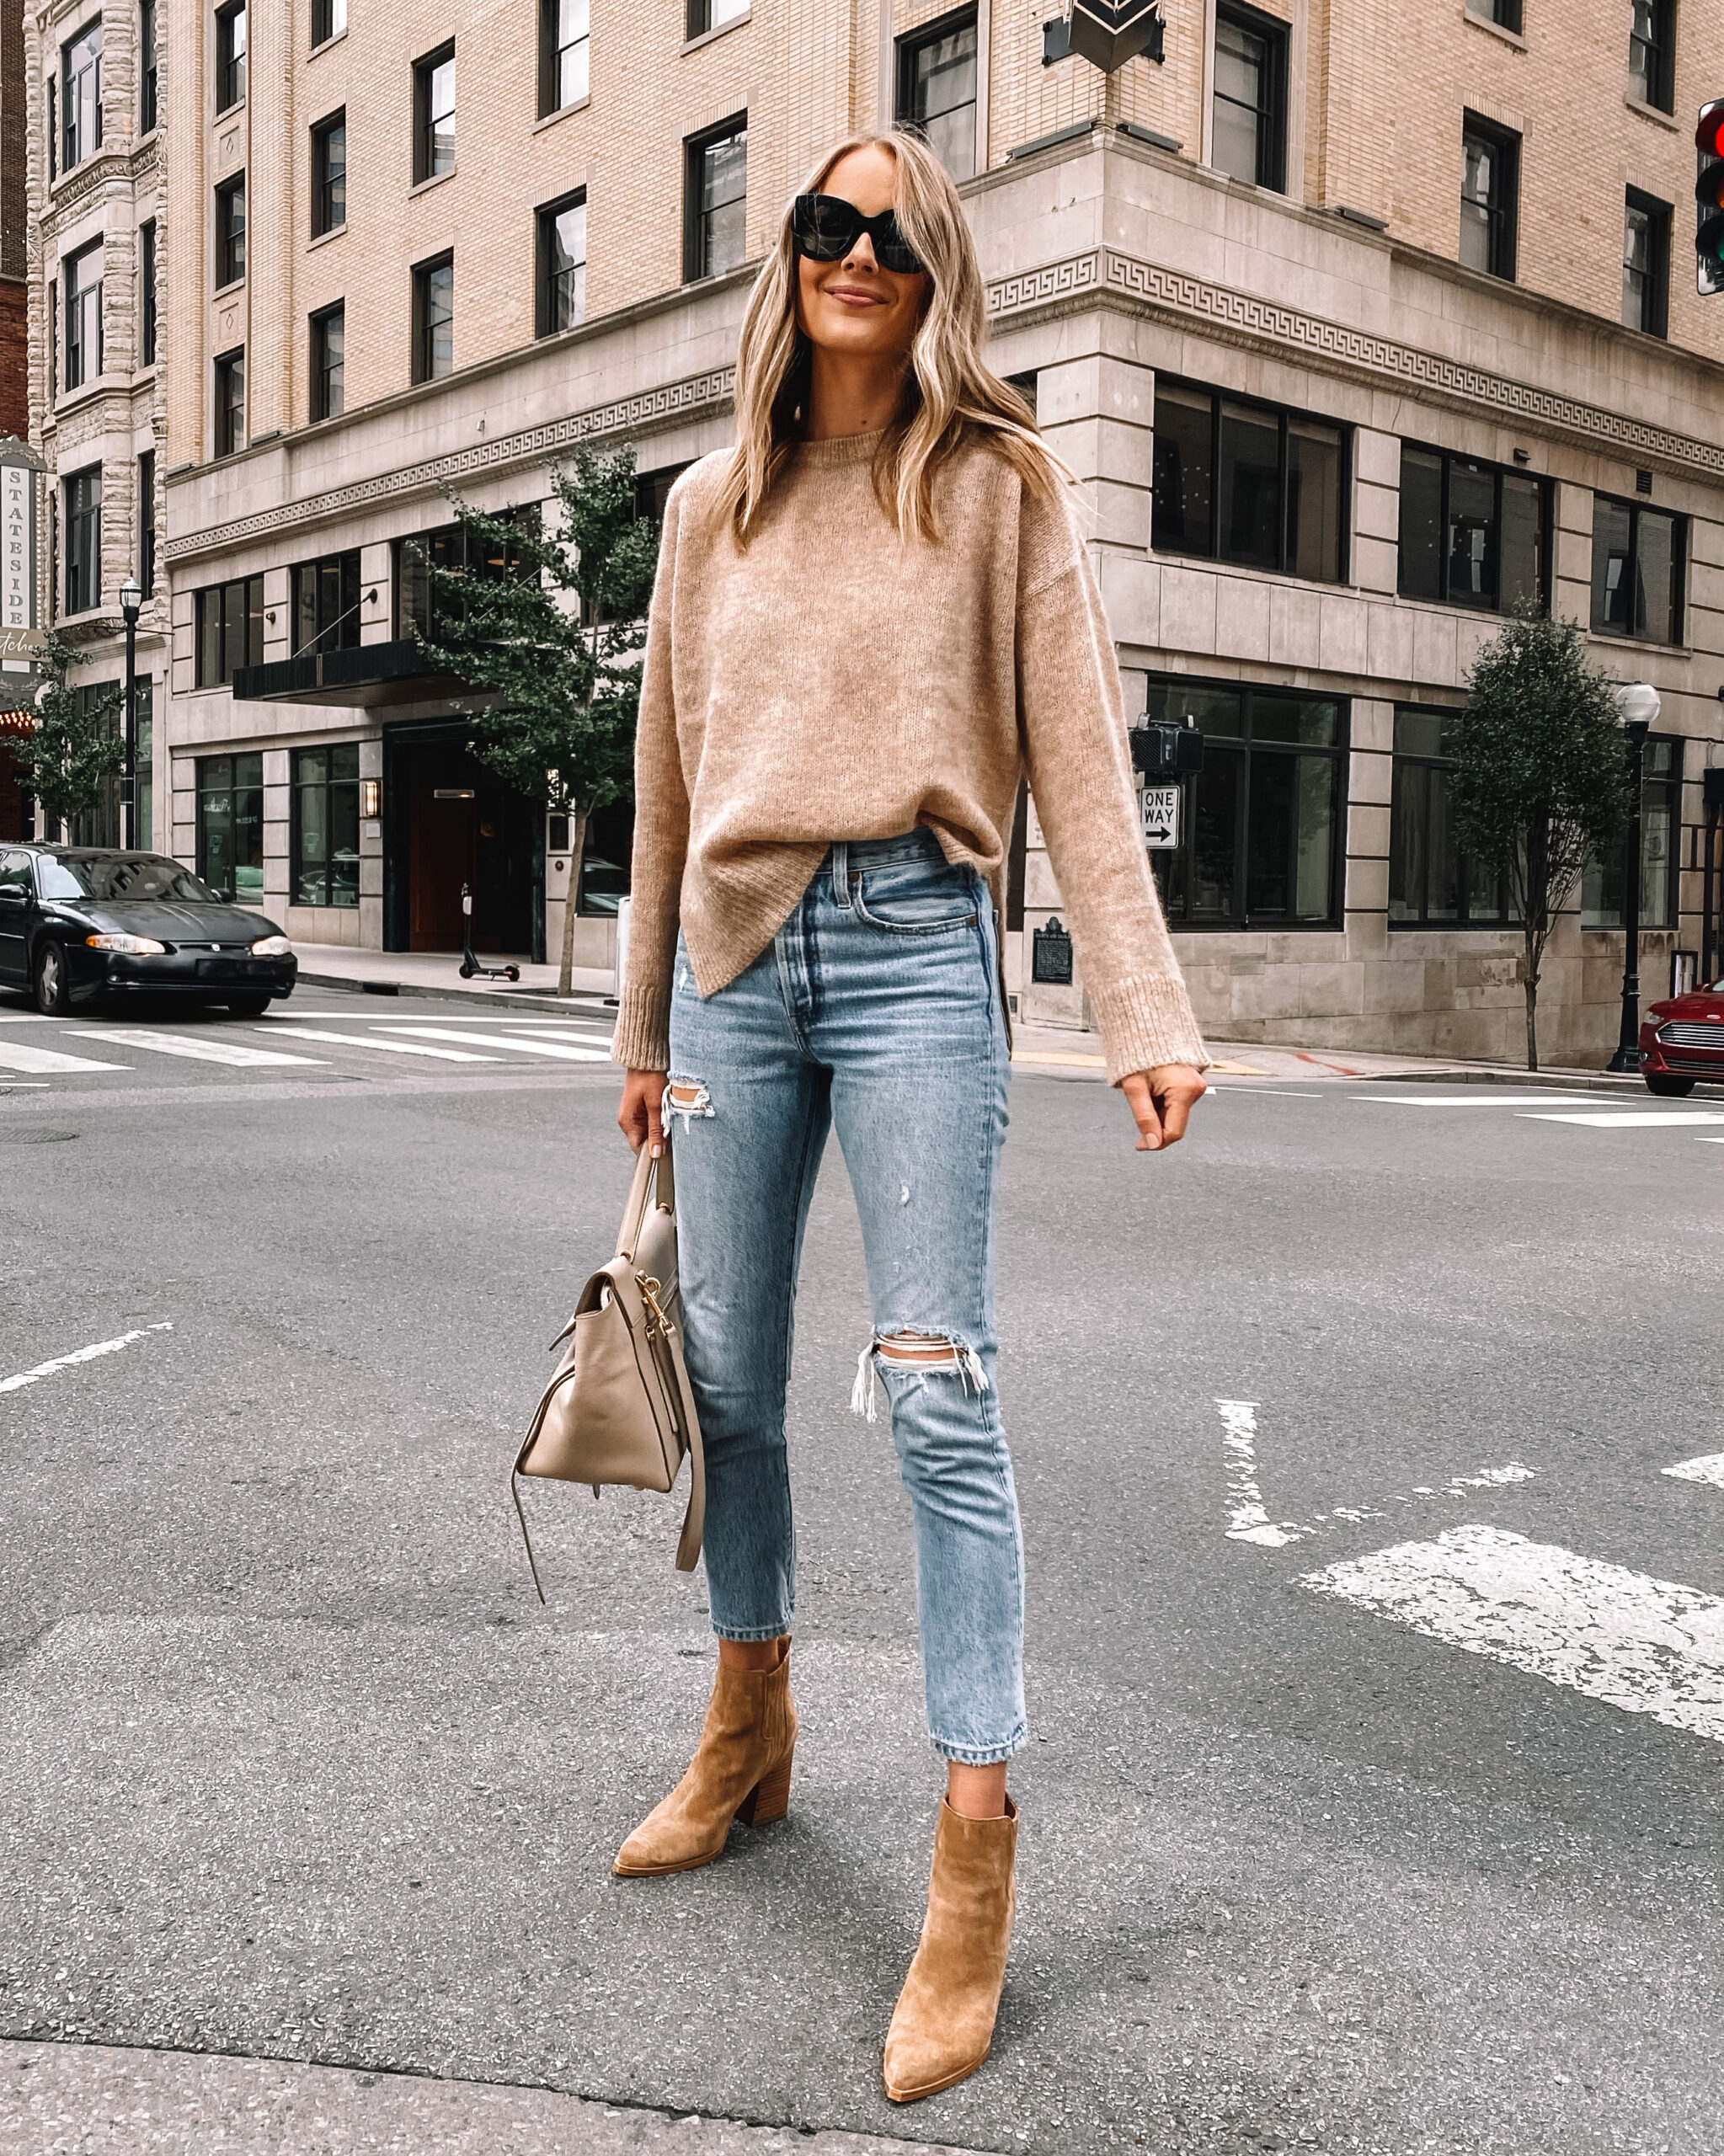 Fashion Jackson Wearing Jenni Kayne Eco Boyfriend Sweater Ripped Levis Jeans Tan Suede Booties